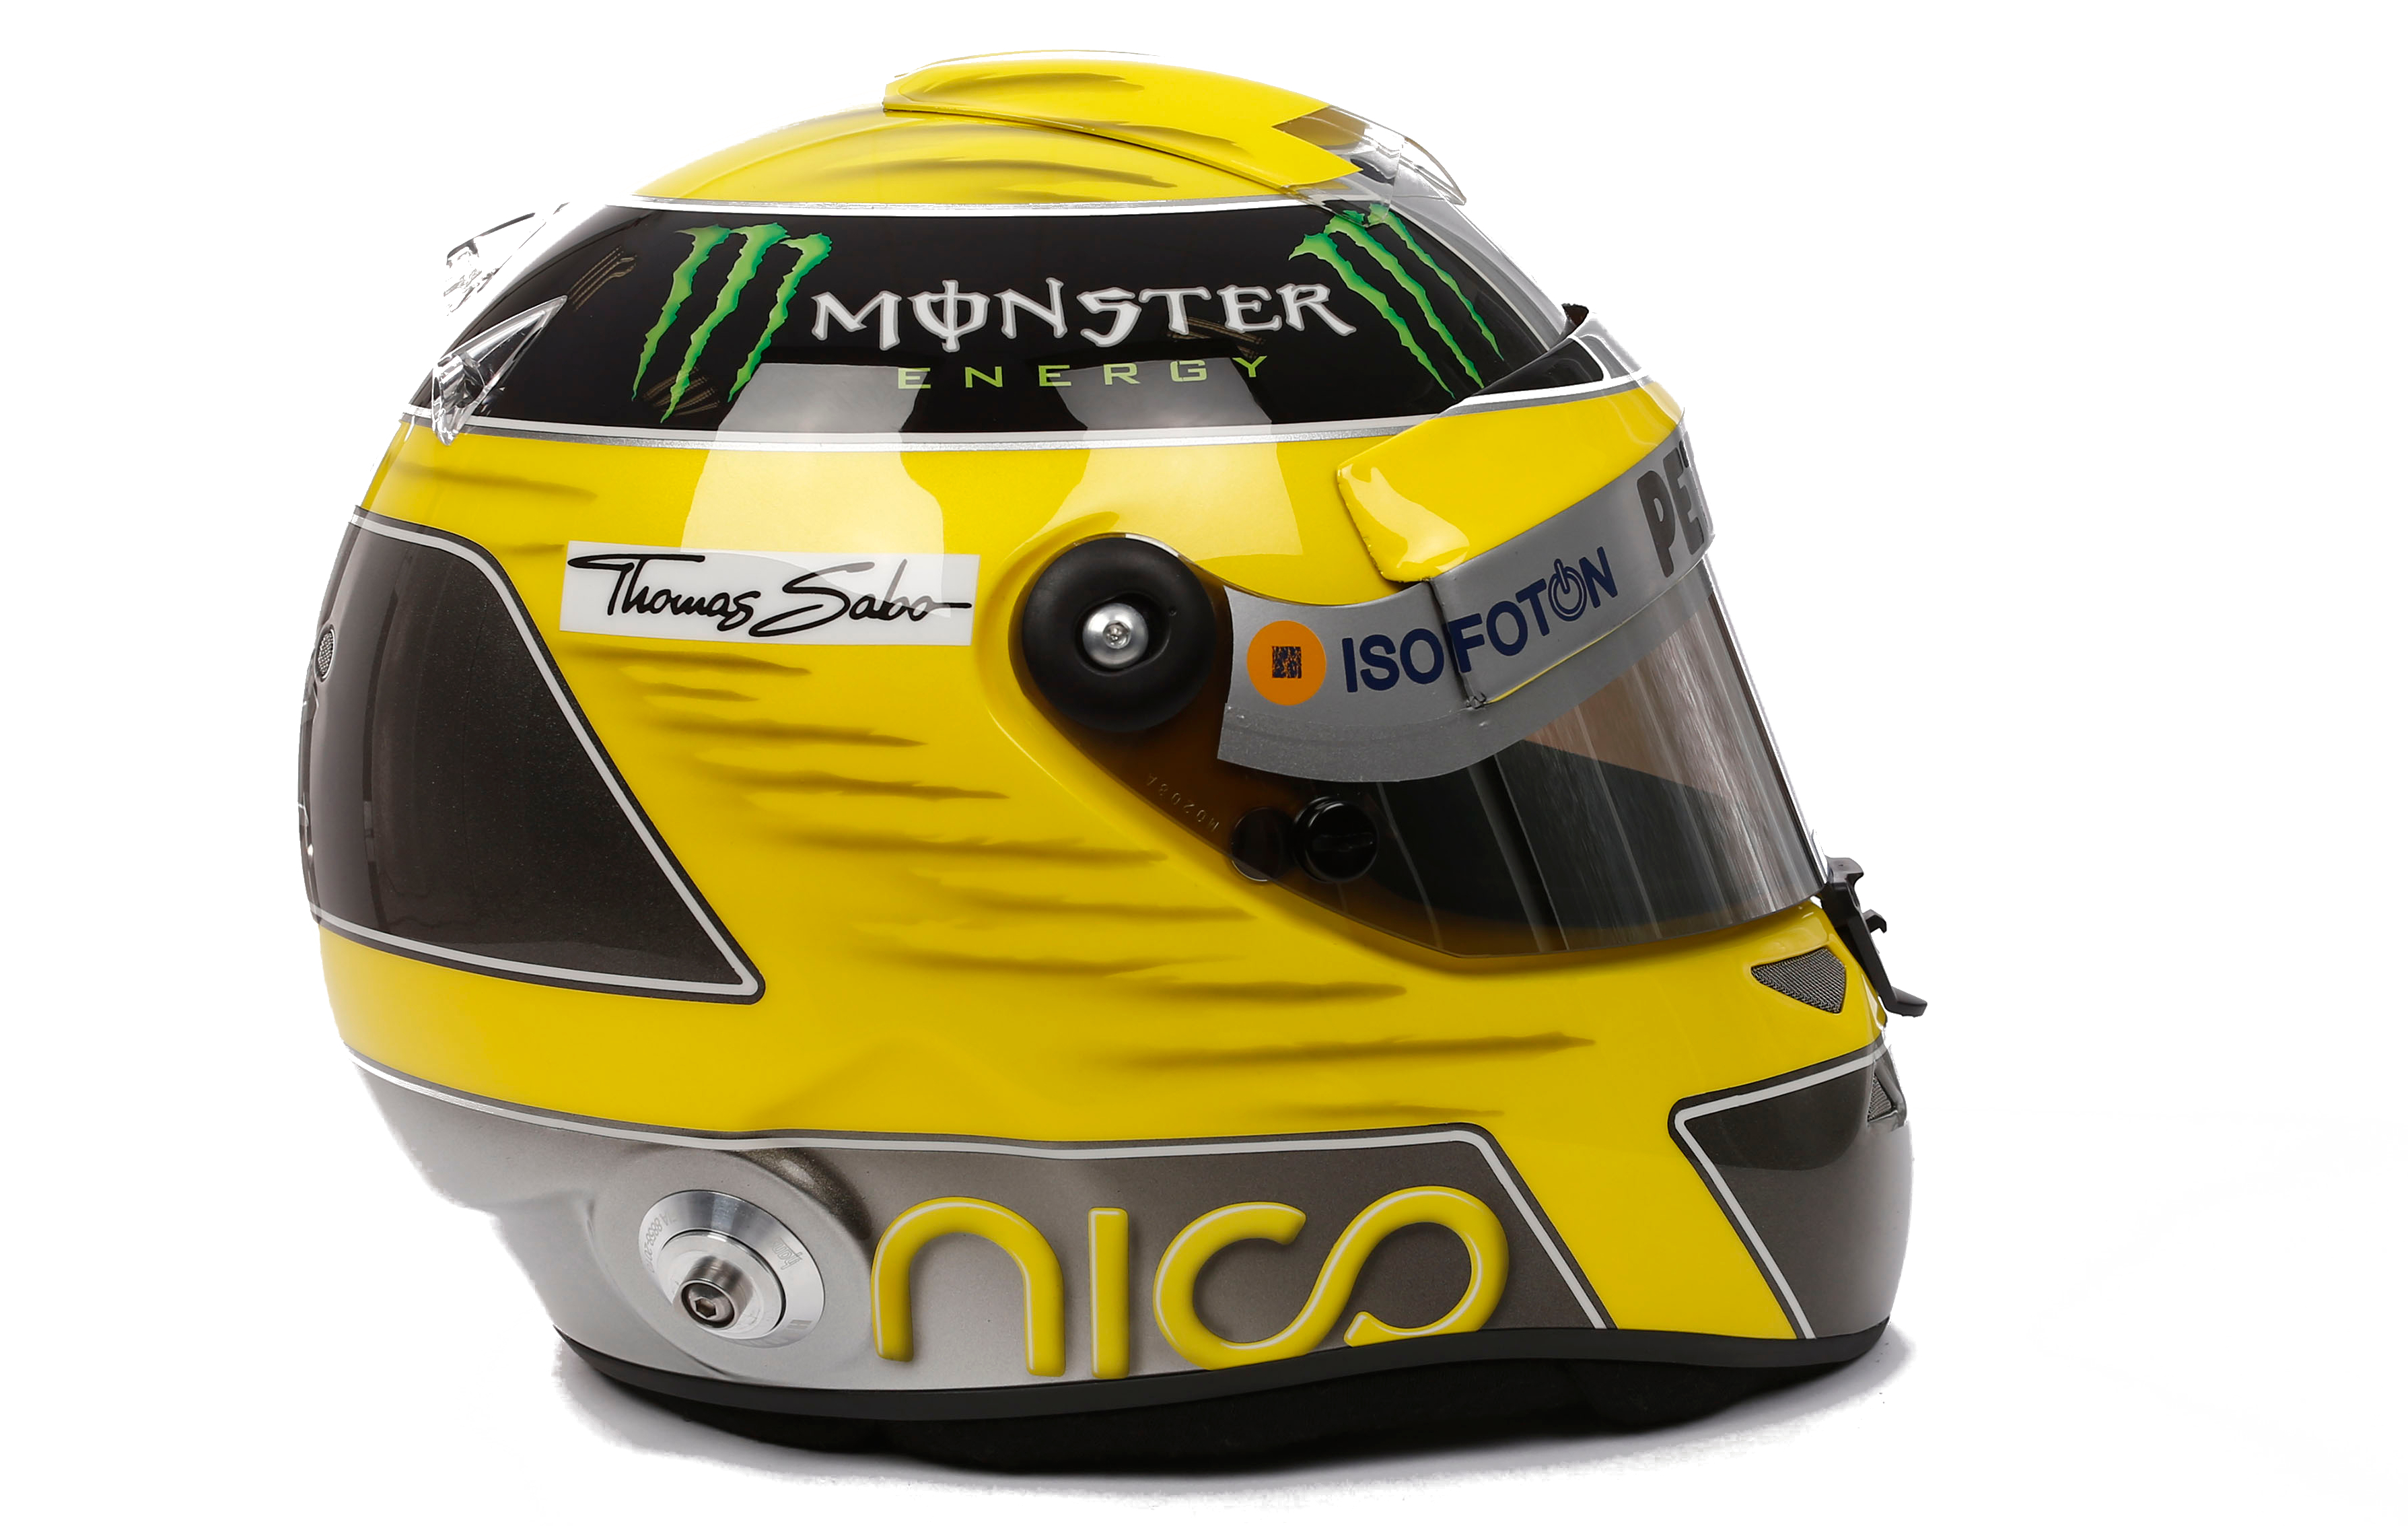 qui a vol le casque de nico rosberg formule 1 auto moto. Black Bedroom Furniture Sets. Home Design Ideas